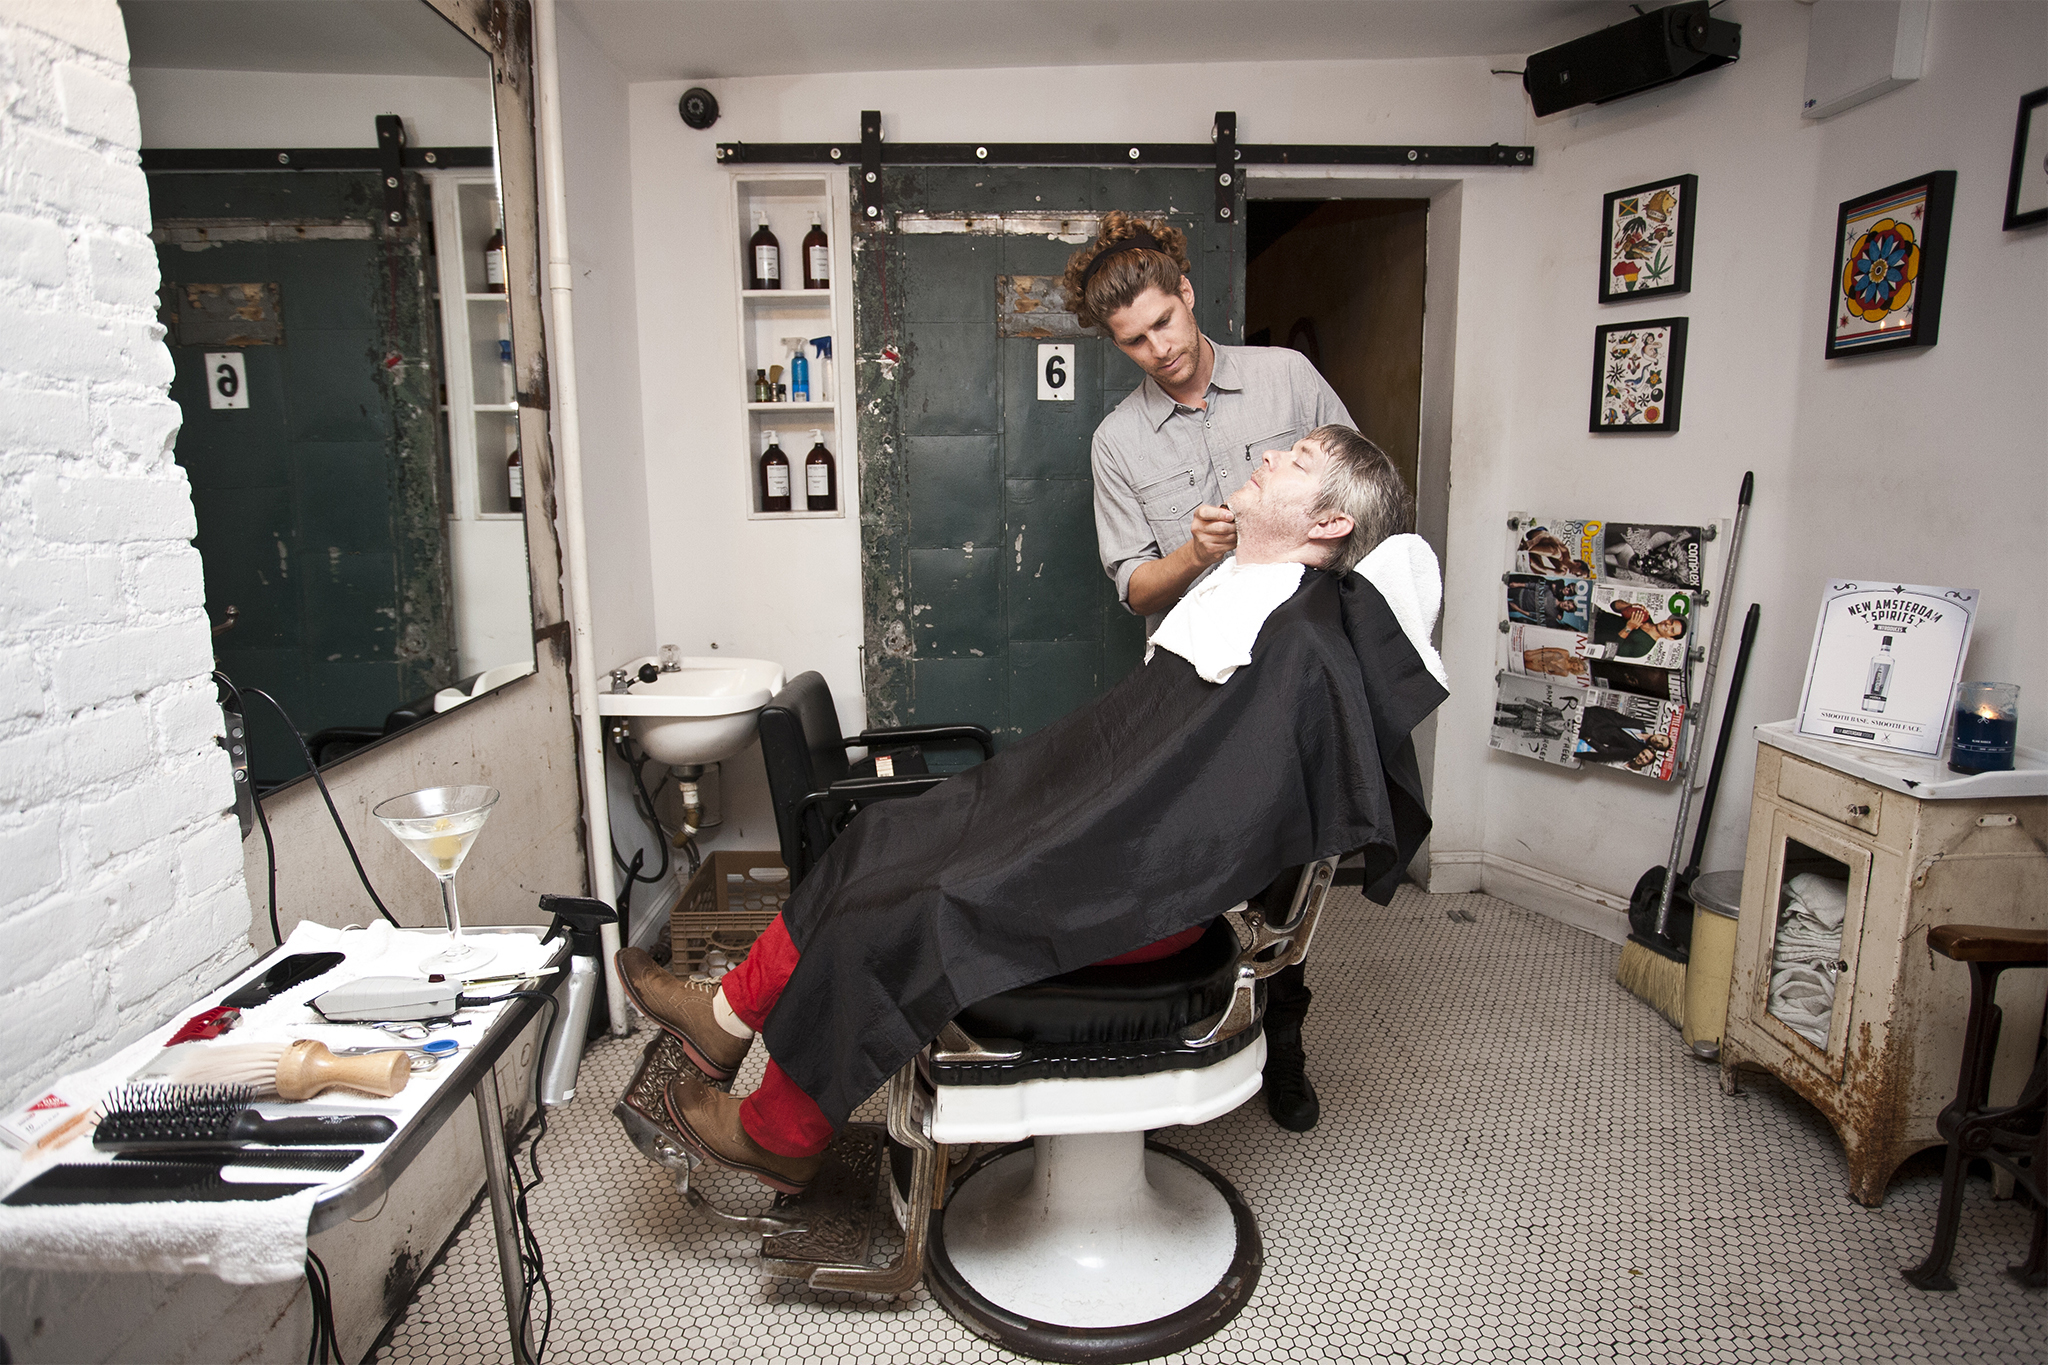 Barber shops in NYC where you can get a hot shave